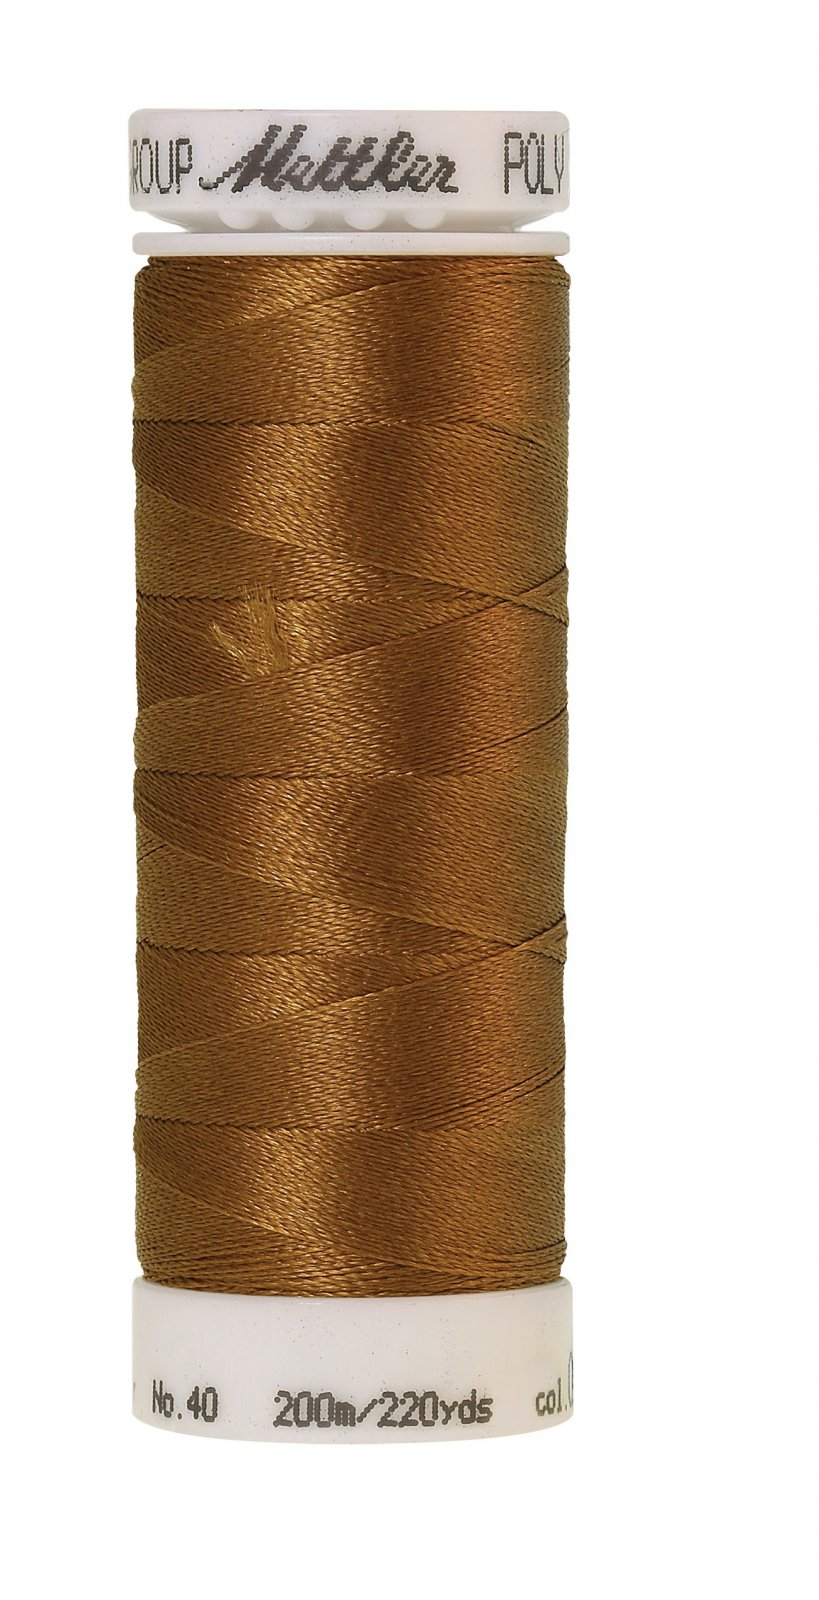 Poly Sheen Polyester Embroidery Thread 40wt 200M/220yd Golden Grain